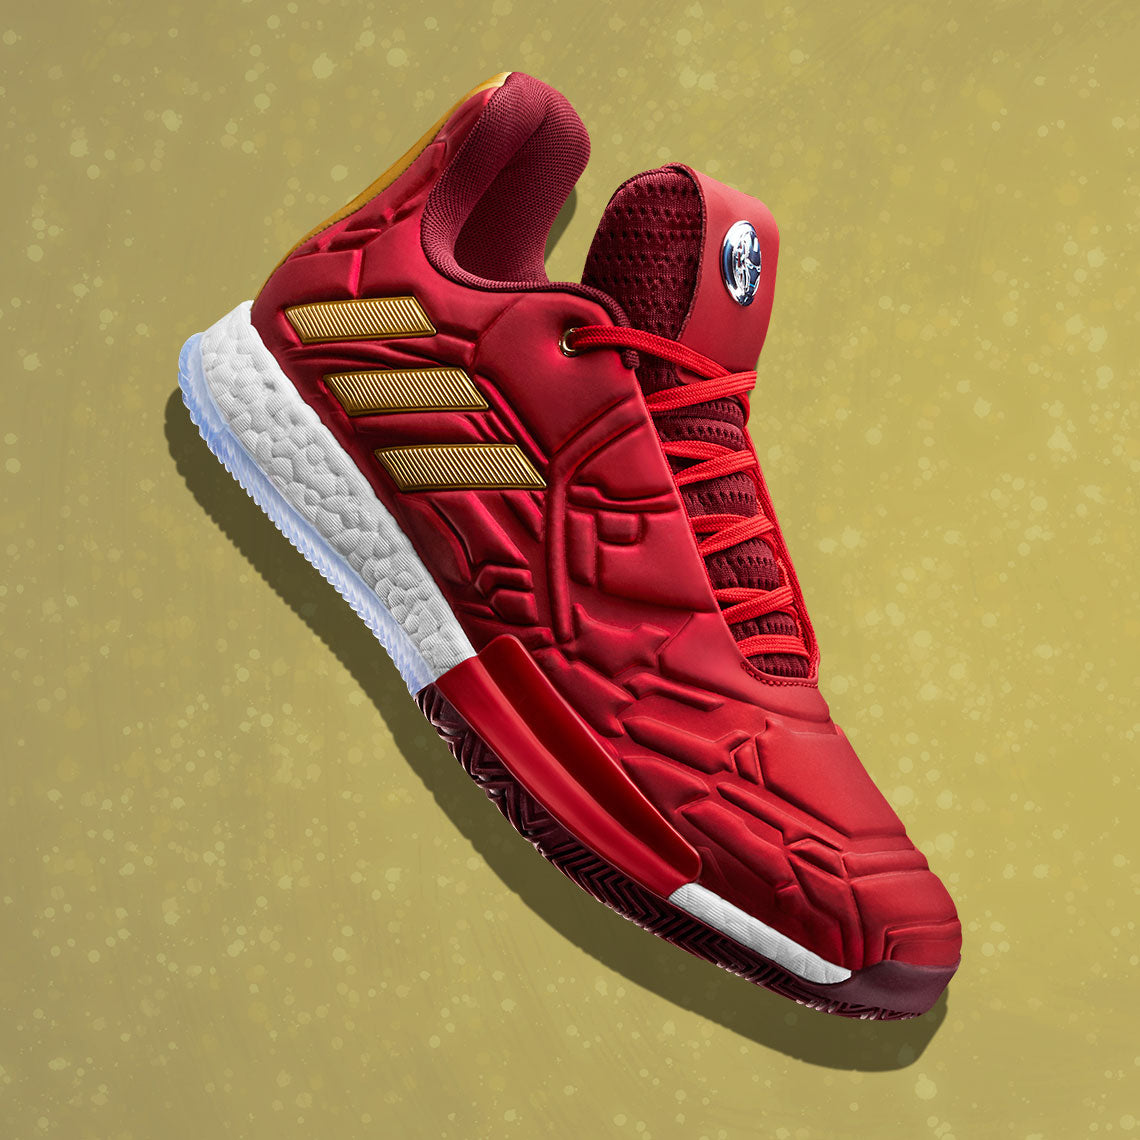 Adidas Harden Vol. 3 'Iron Man'